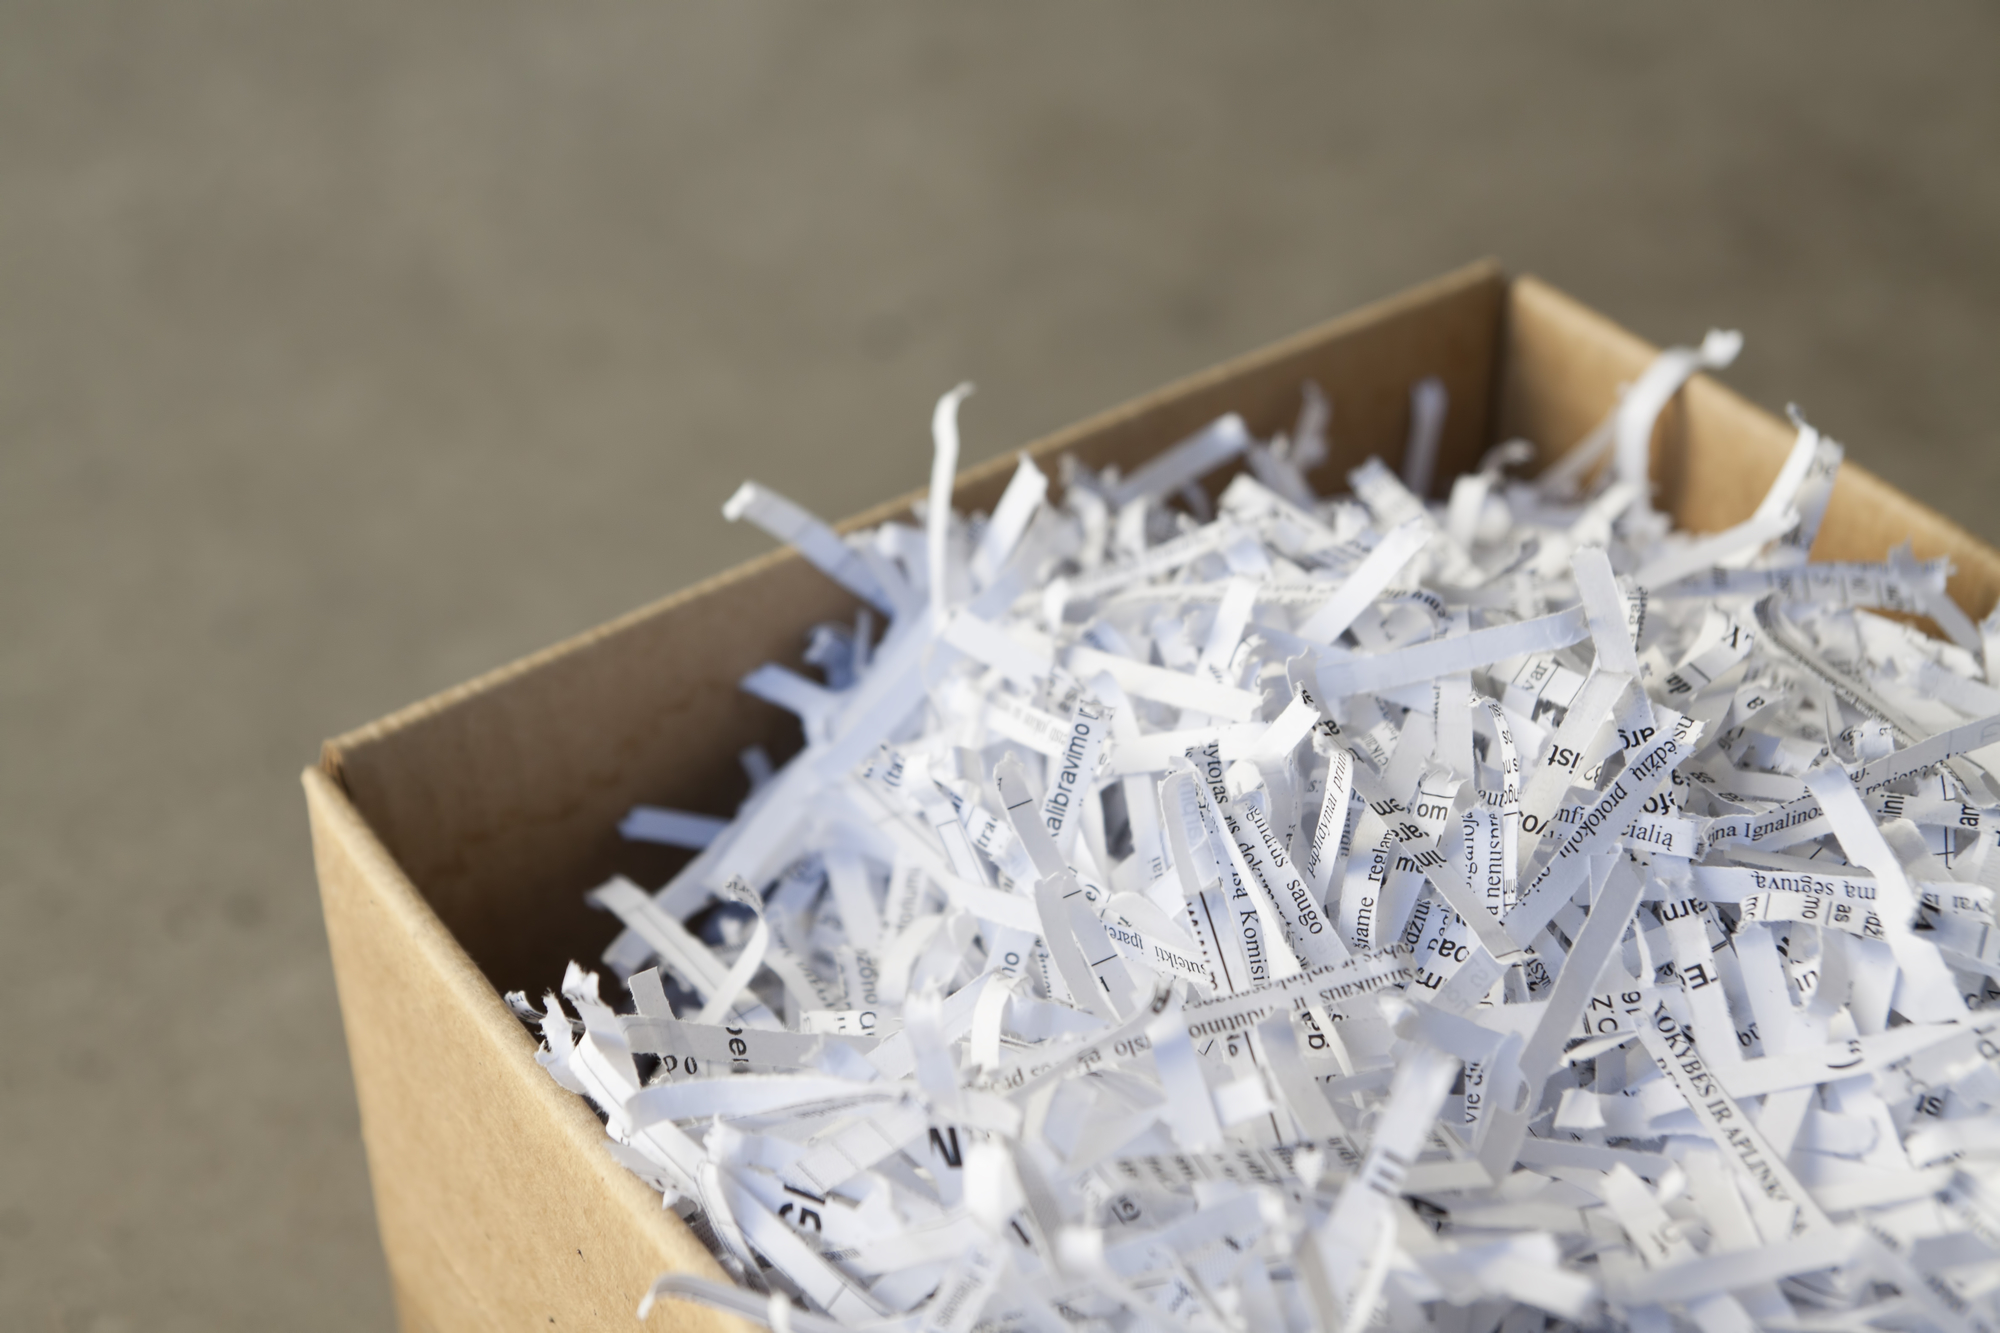 Witness Document Shredded in NH